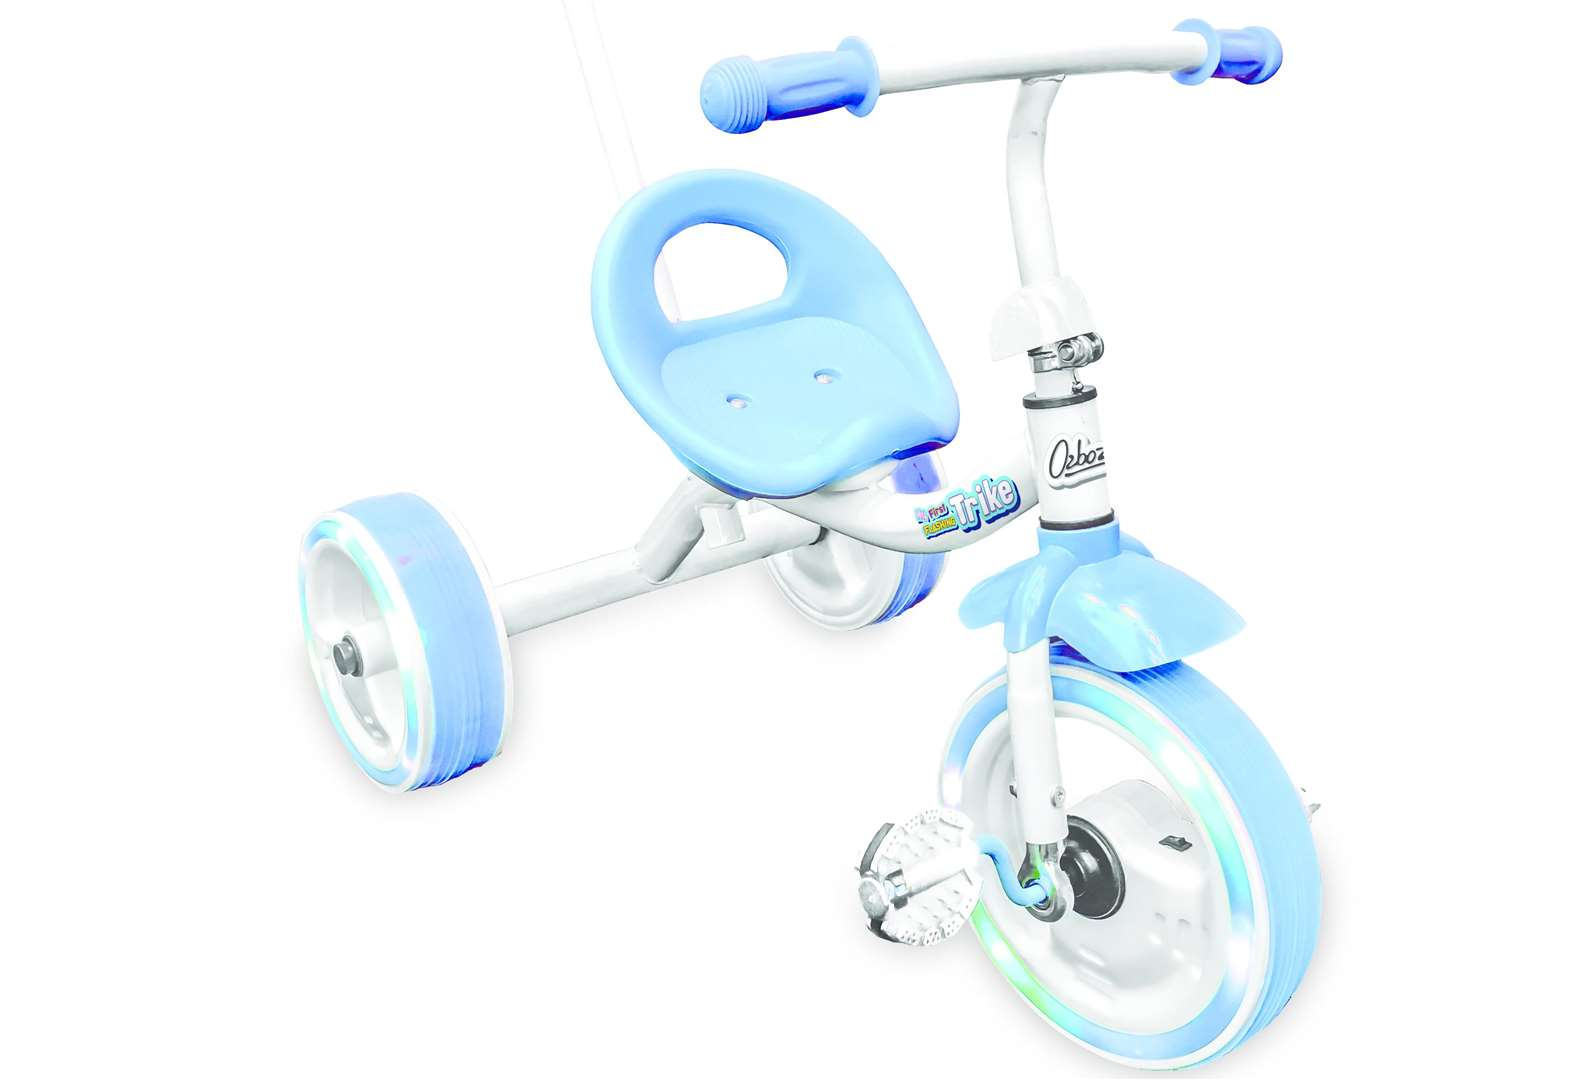 H Grossman Ltd My First Light Up Trike £49.99 (6703586)